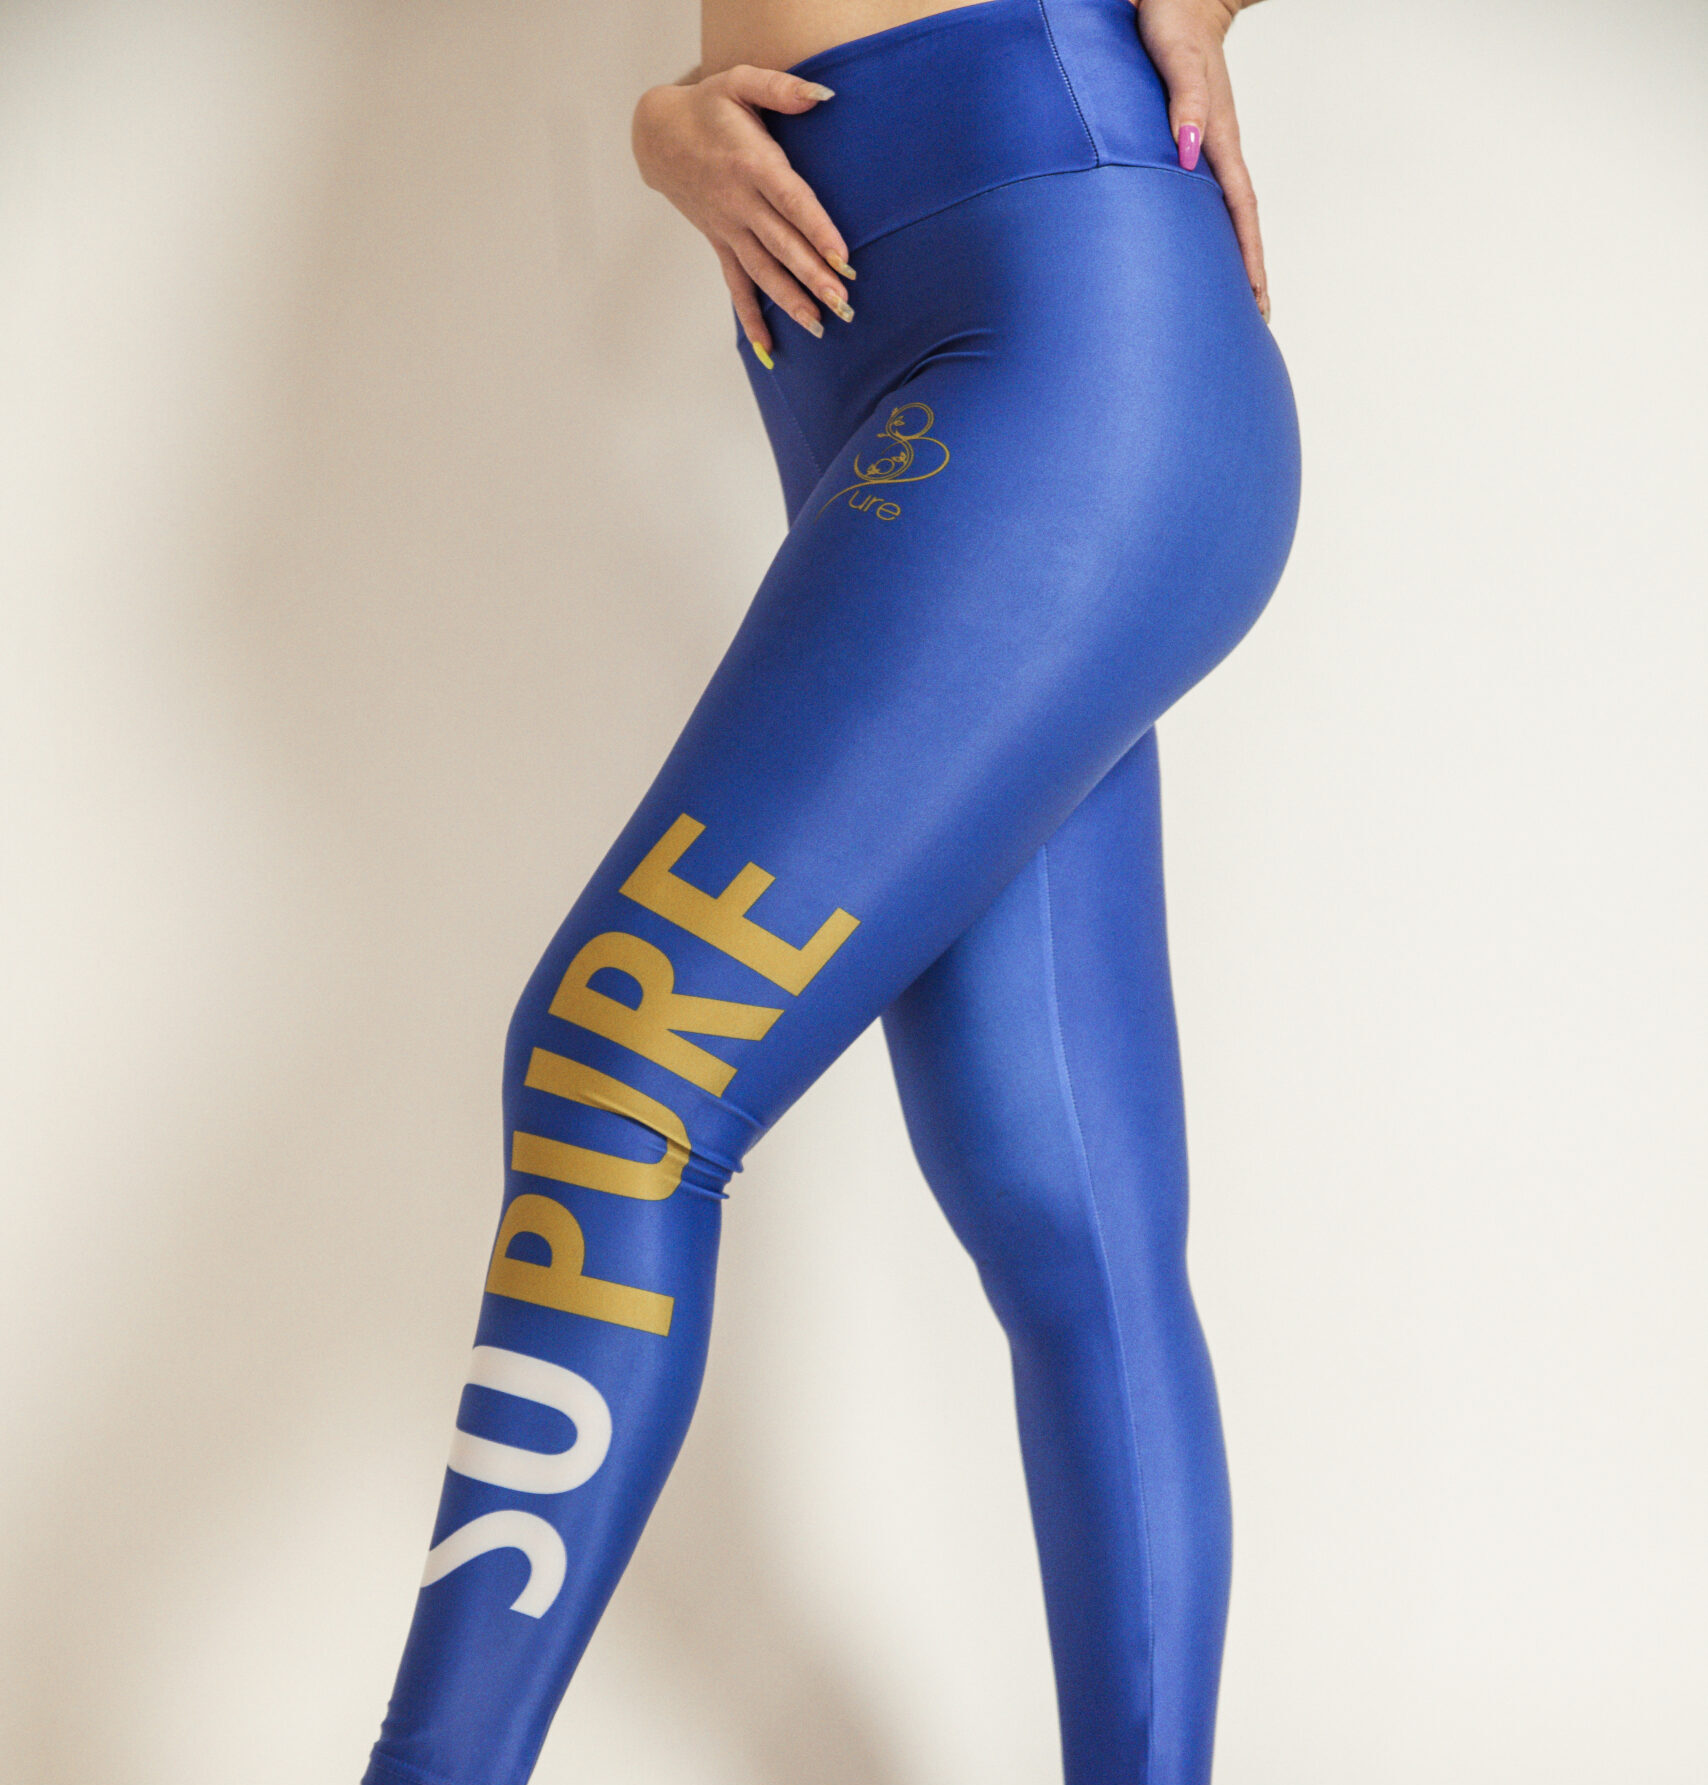 Sopure limited Leggings